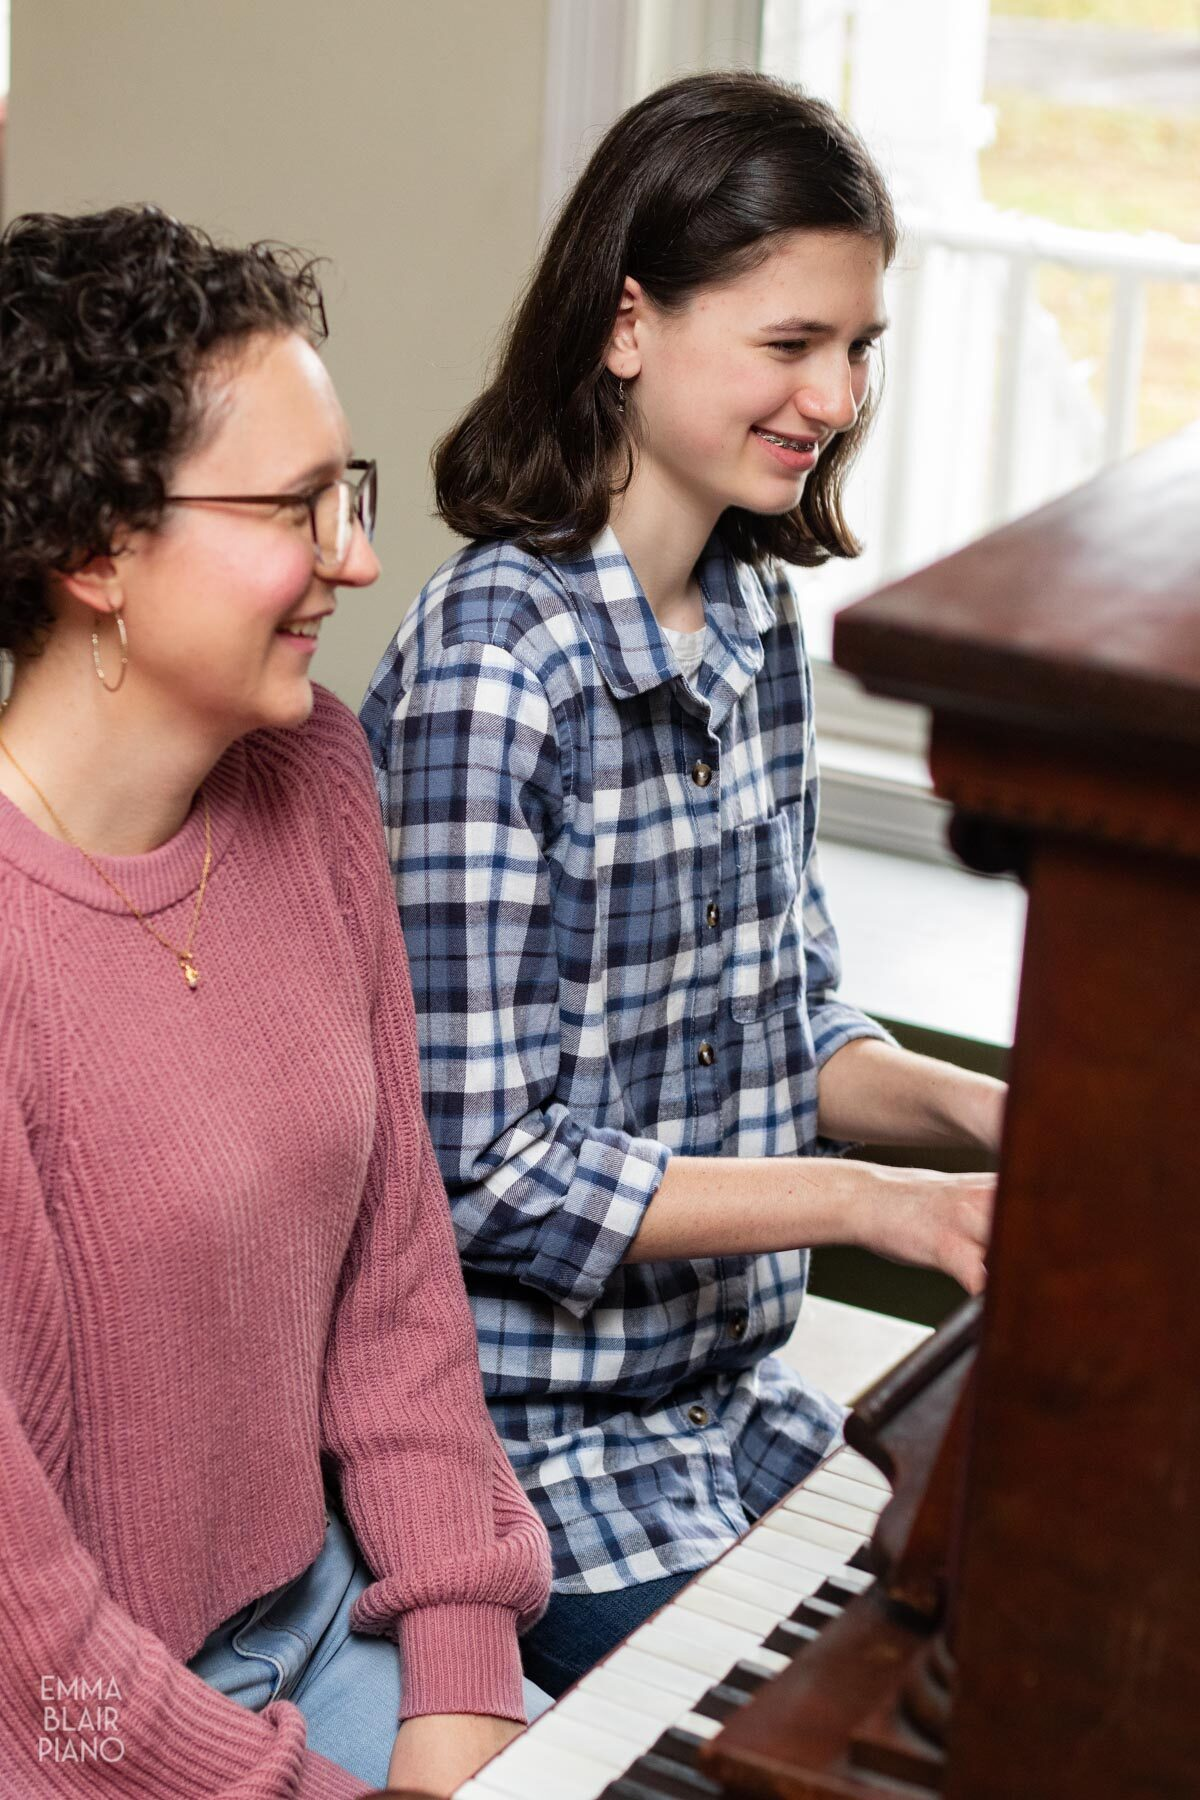 teenage girl playing the piano and smiling beside her piano teacher